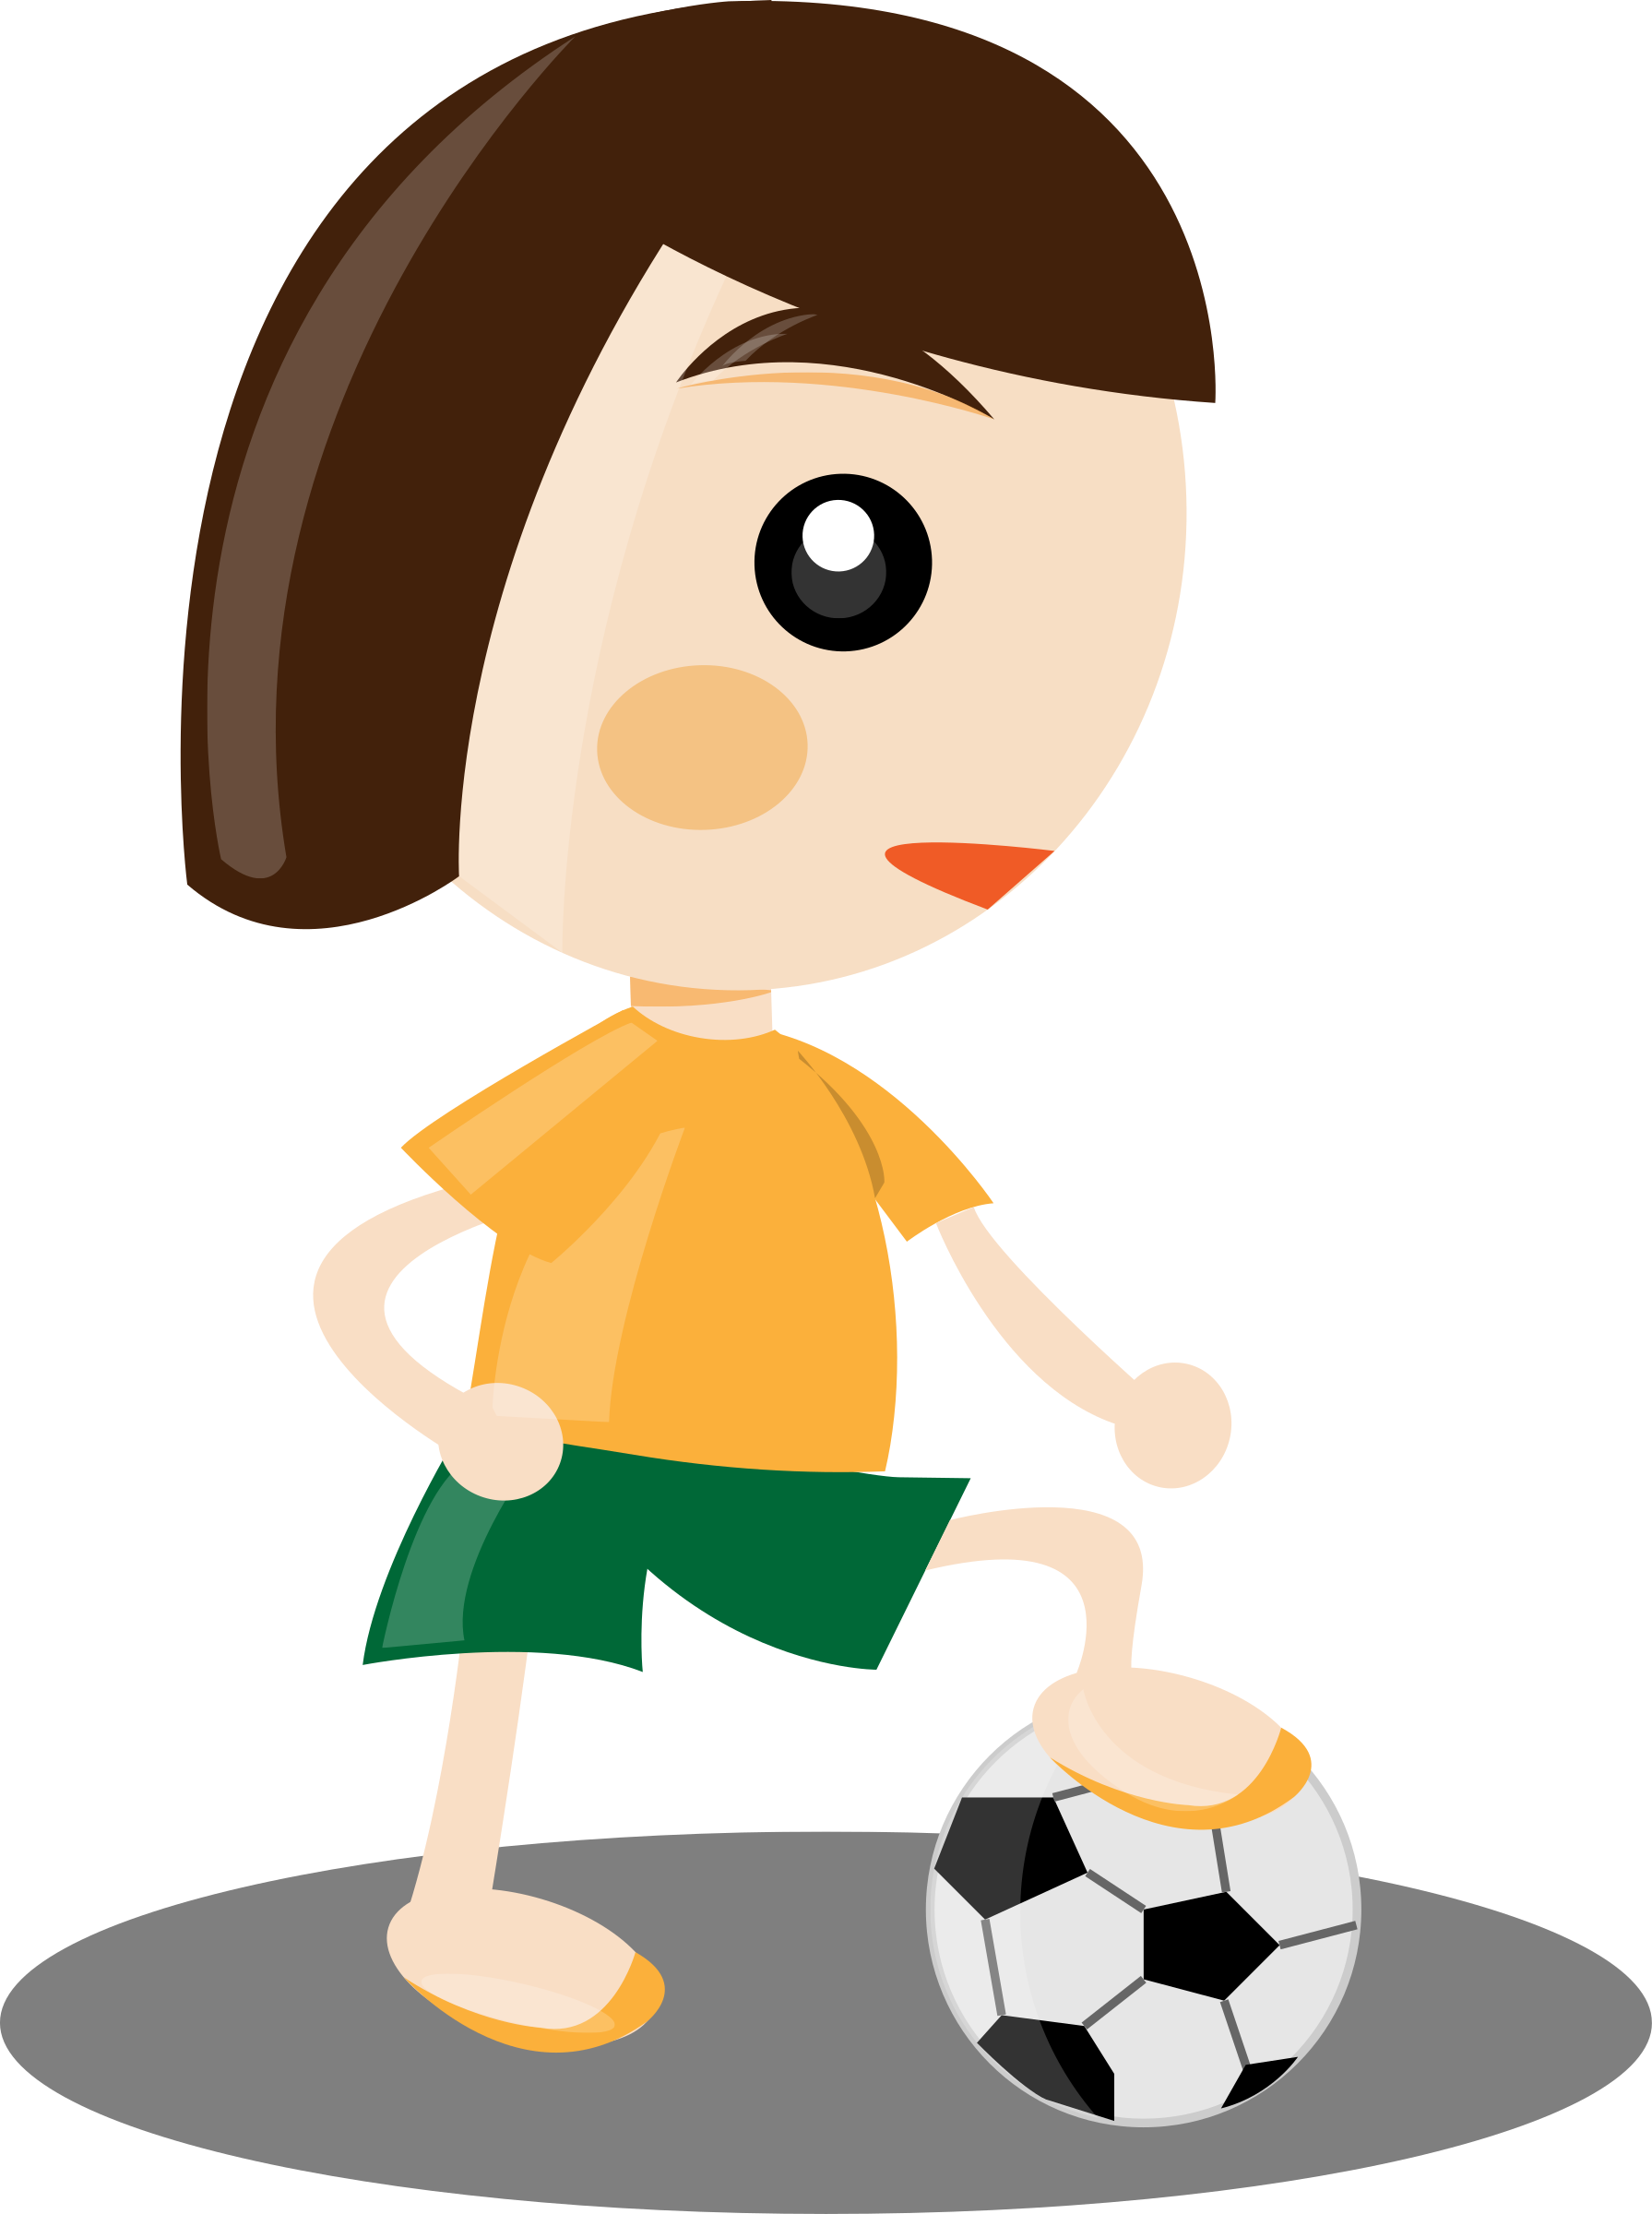 Girl sports at getdrawings. Person clipart laptop